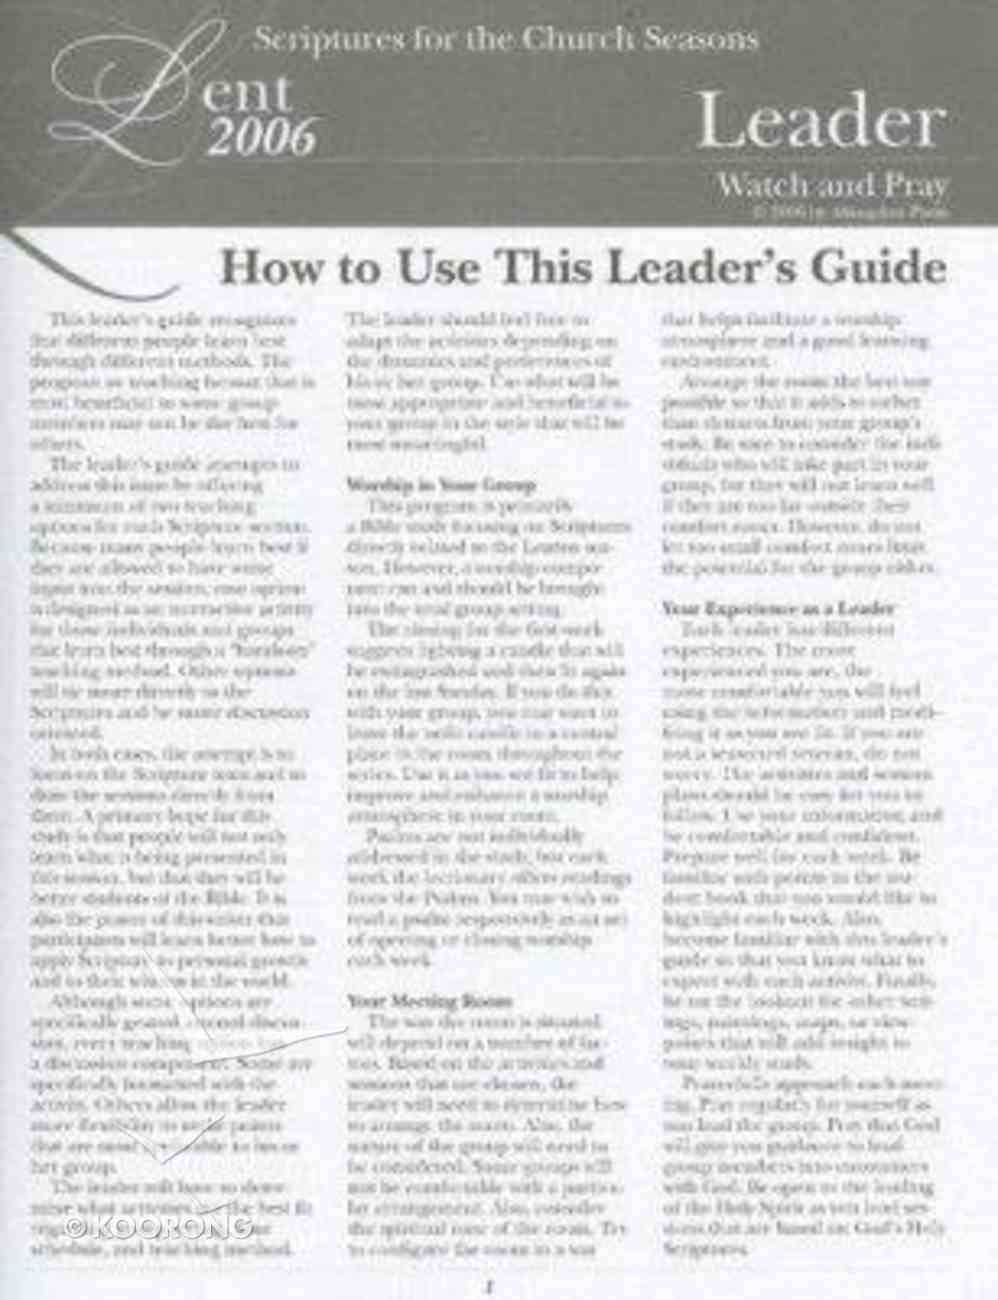 Lent 2006: Watch and Pray (Leader's Guide) Paperback